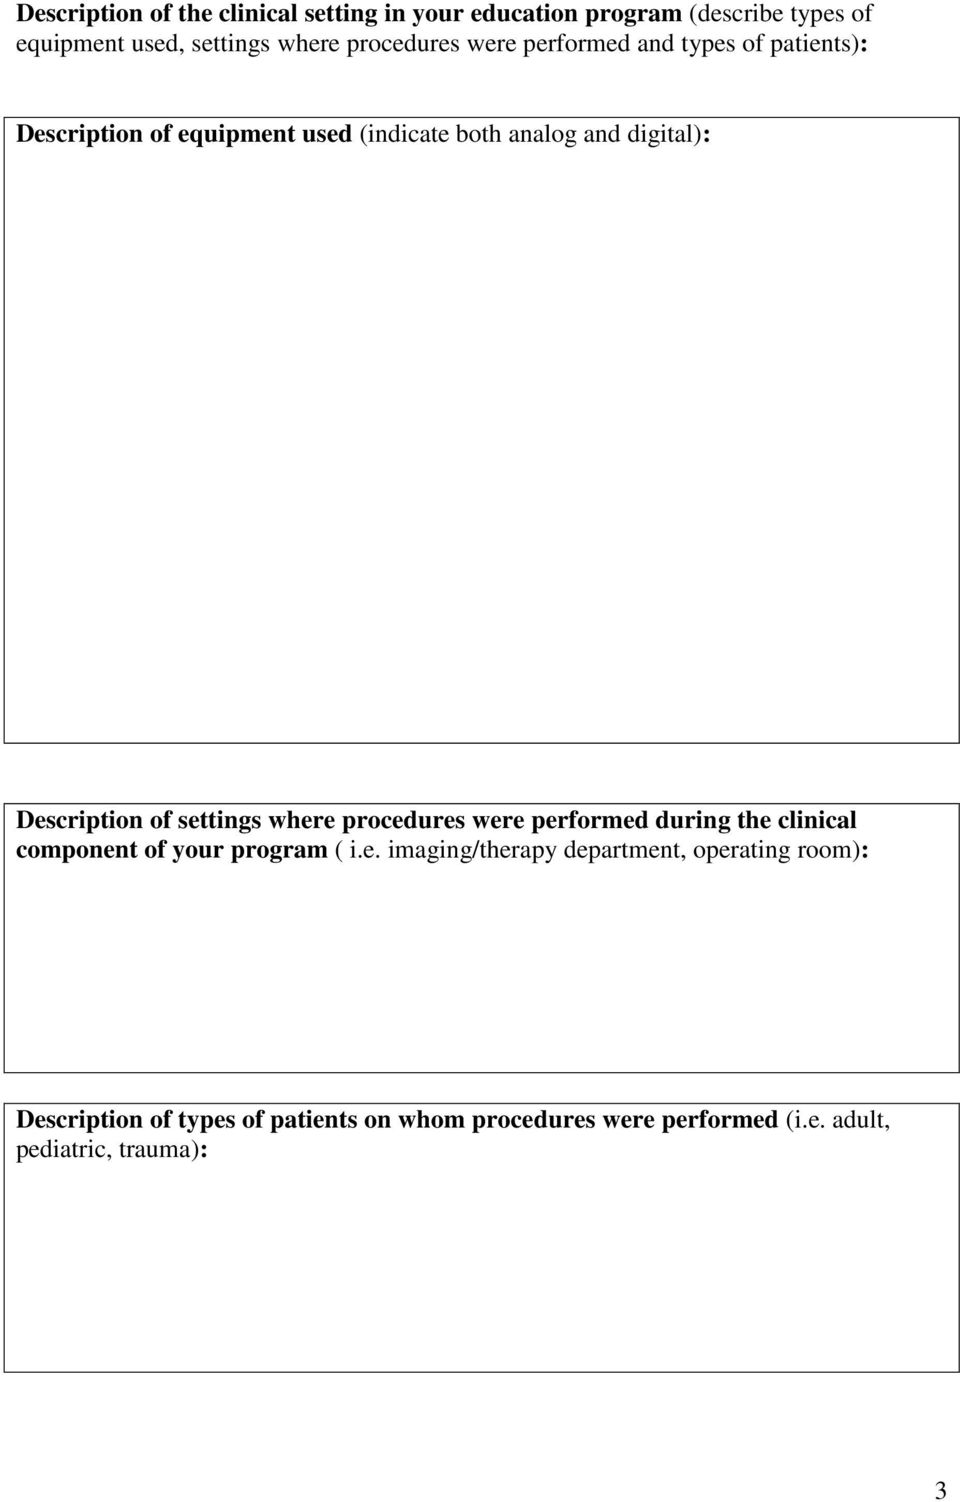 Description of settings where procedures were performed during the clinical component of your program ( i.e. imaging/therapy department, operating room): Description of types of patients on whom procedures were performed (i.